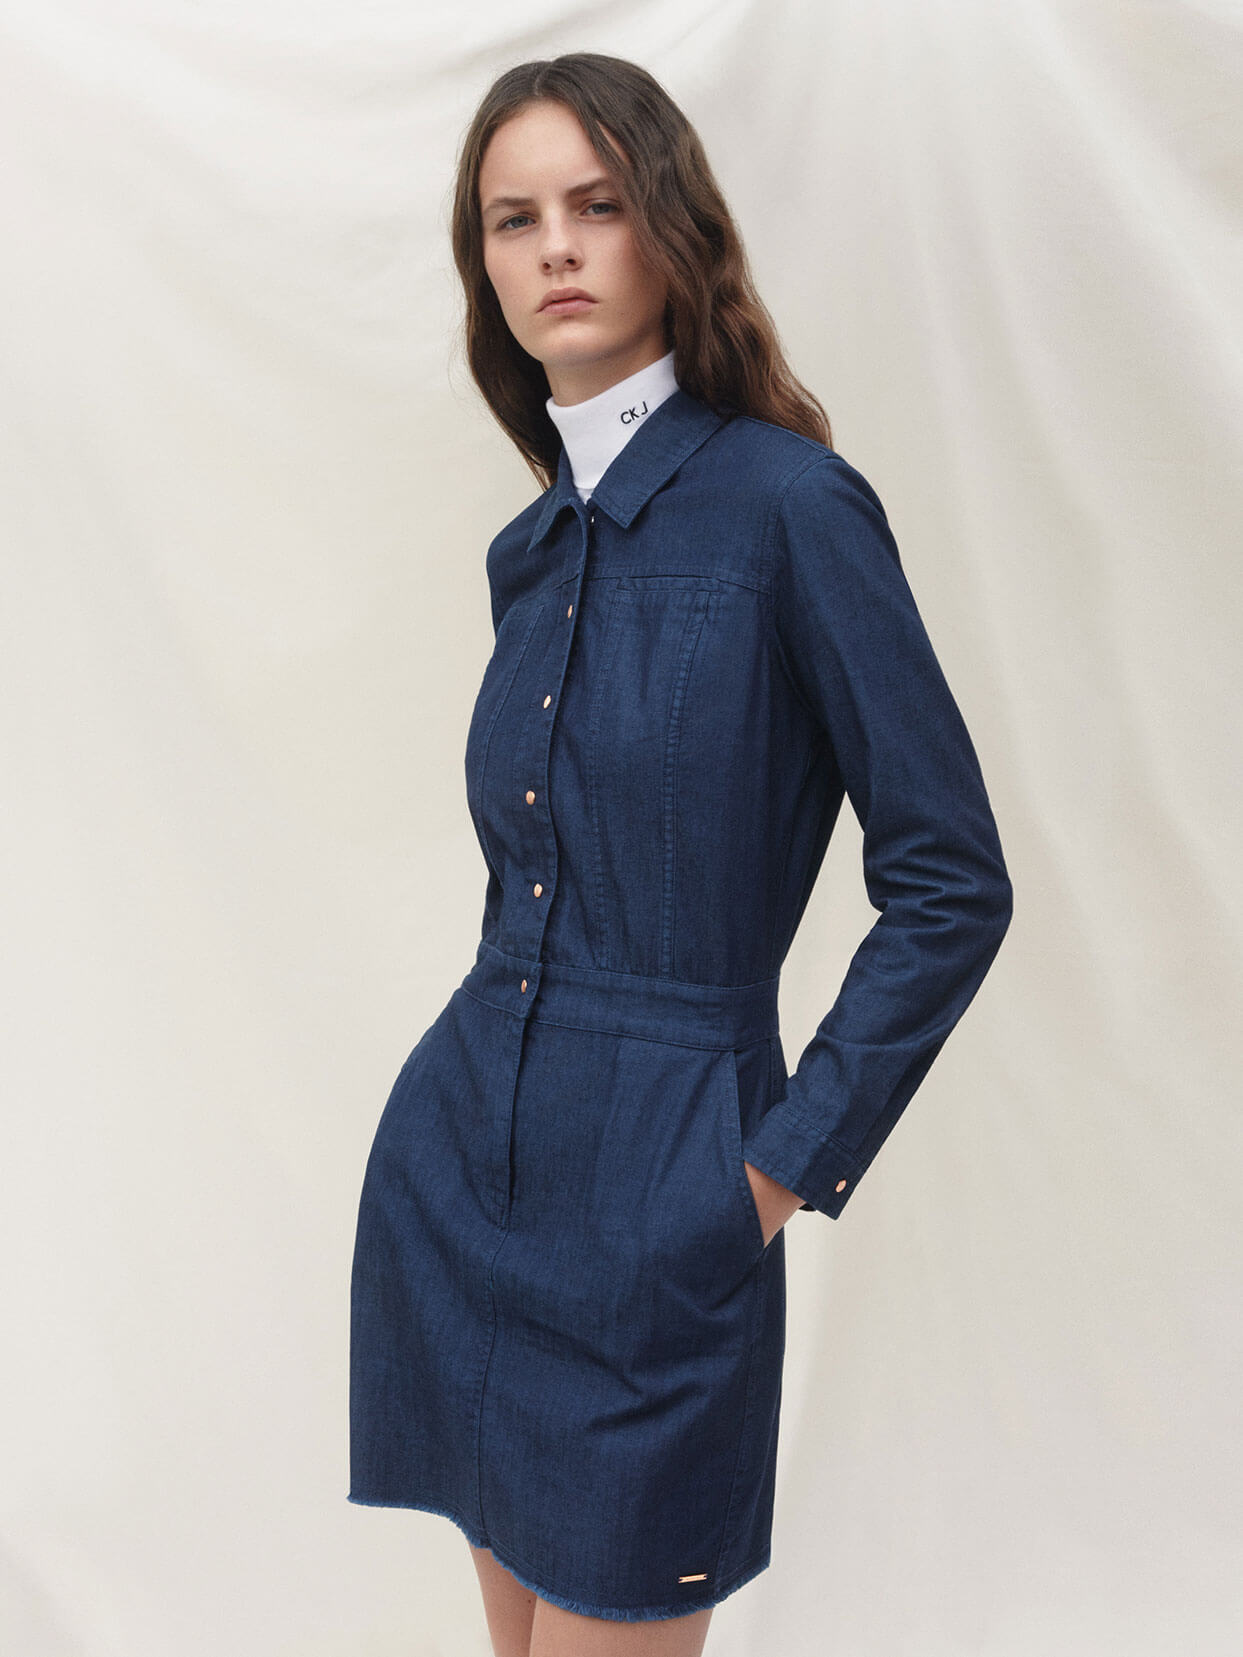 Calvin Klein New Blues for Women